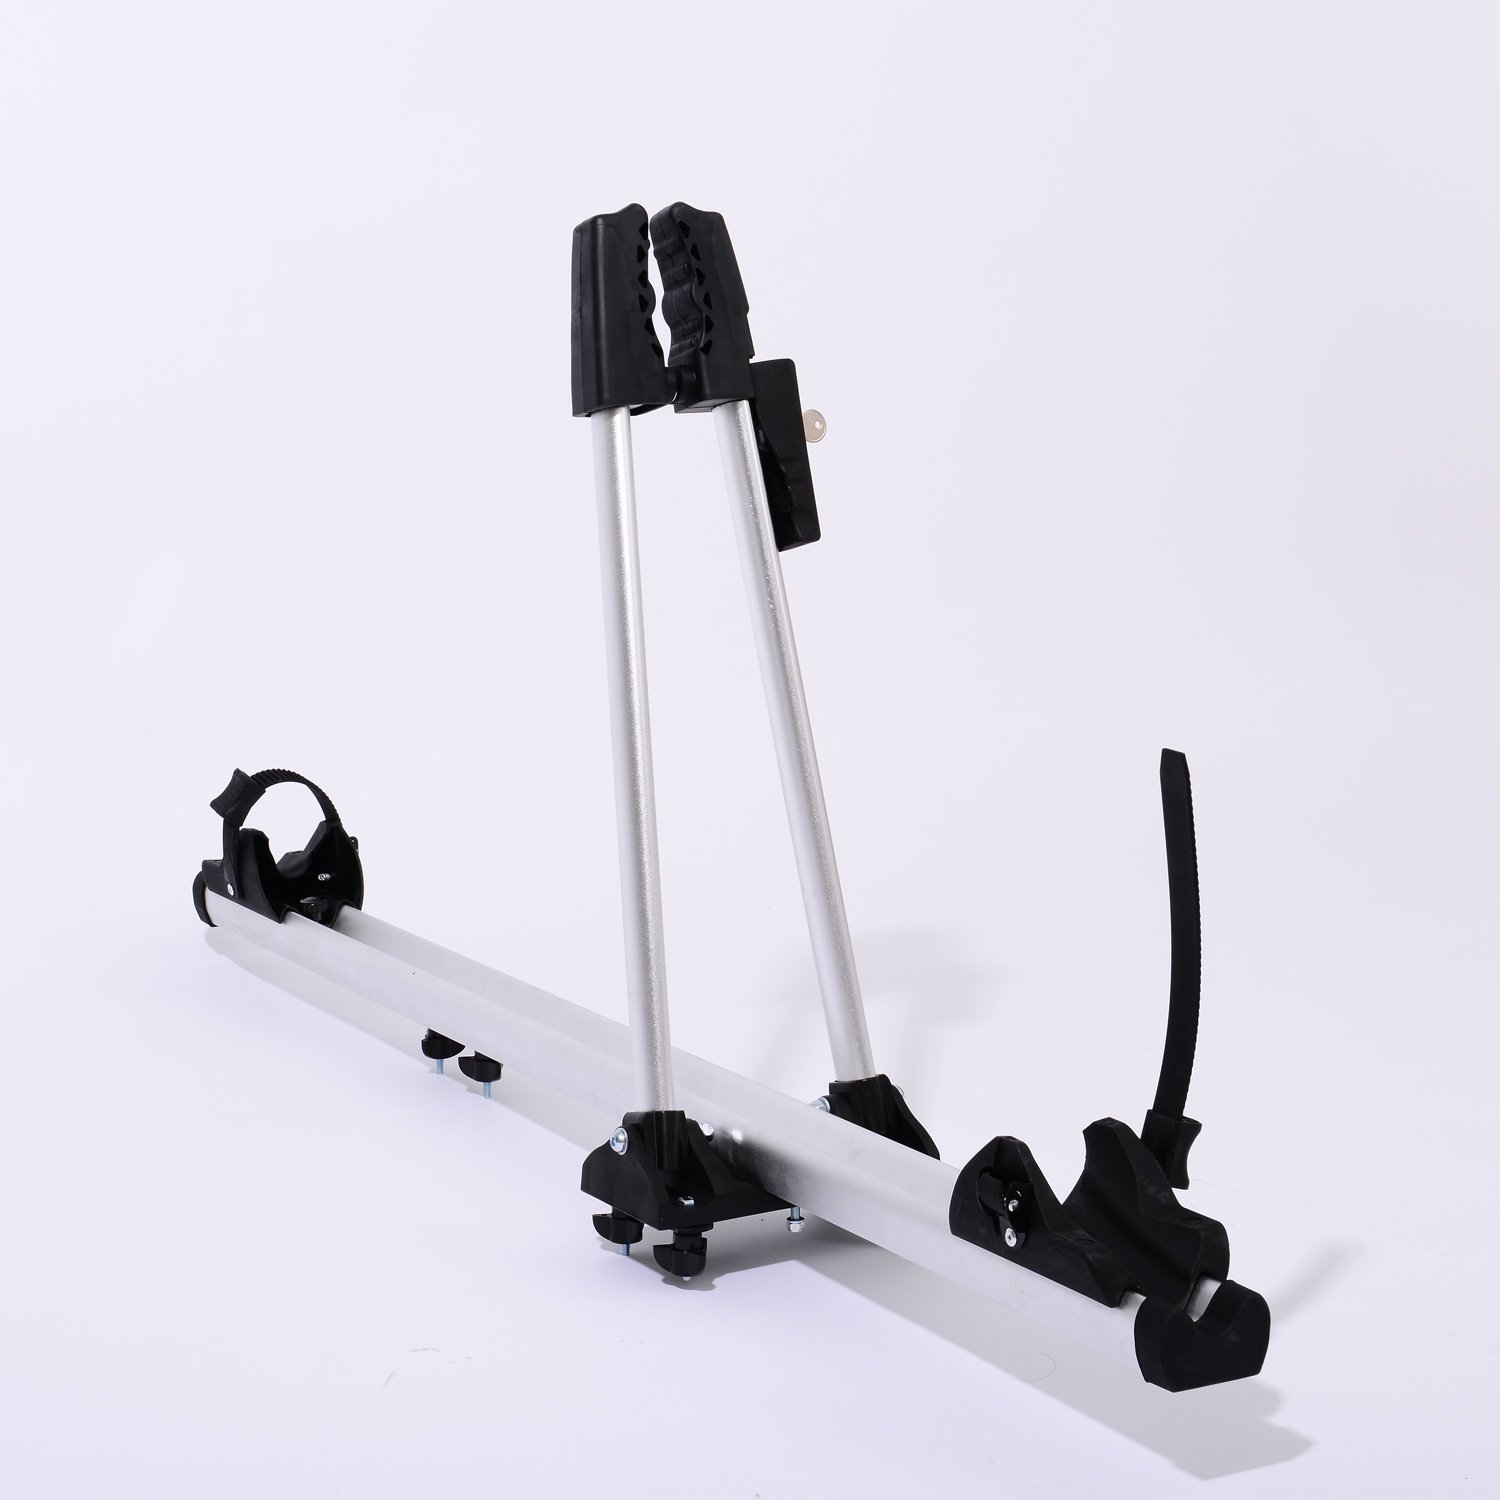 New Universial Bike Bicycle Rack Carrier Car Mount Roof Top Upright Aluminum w/ Lock